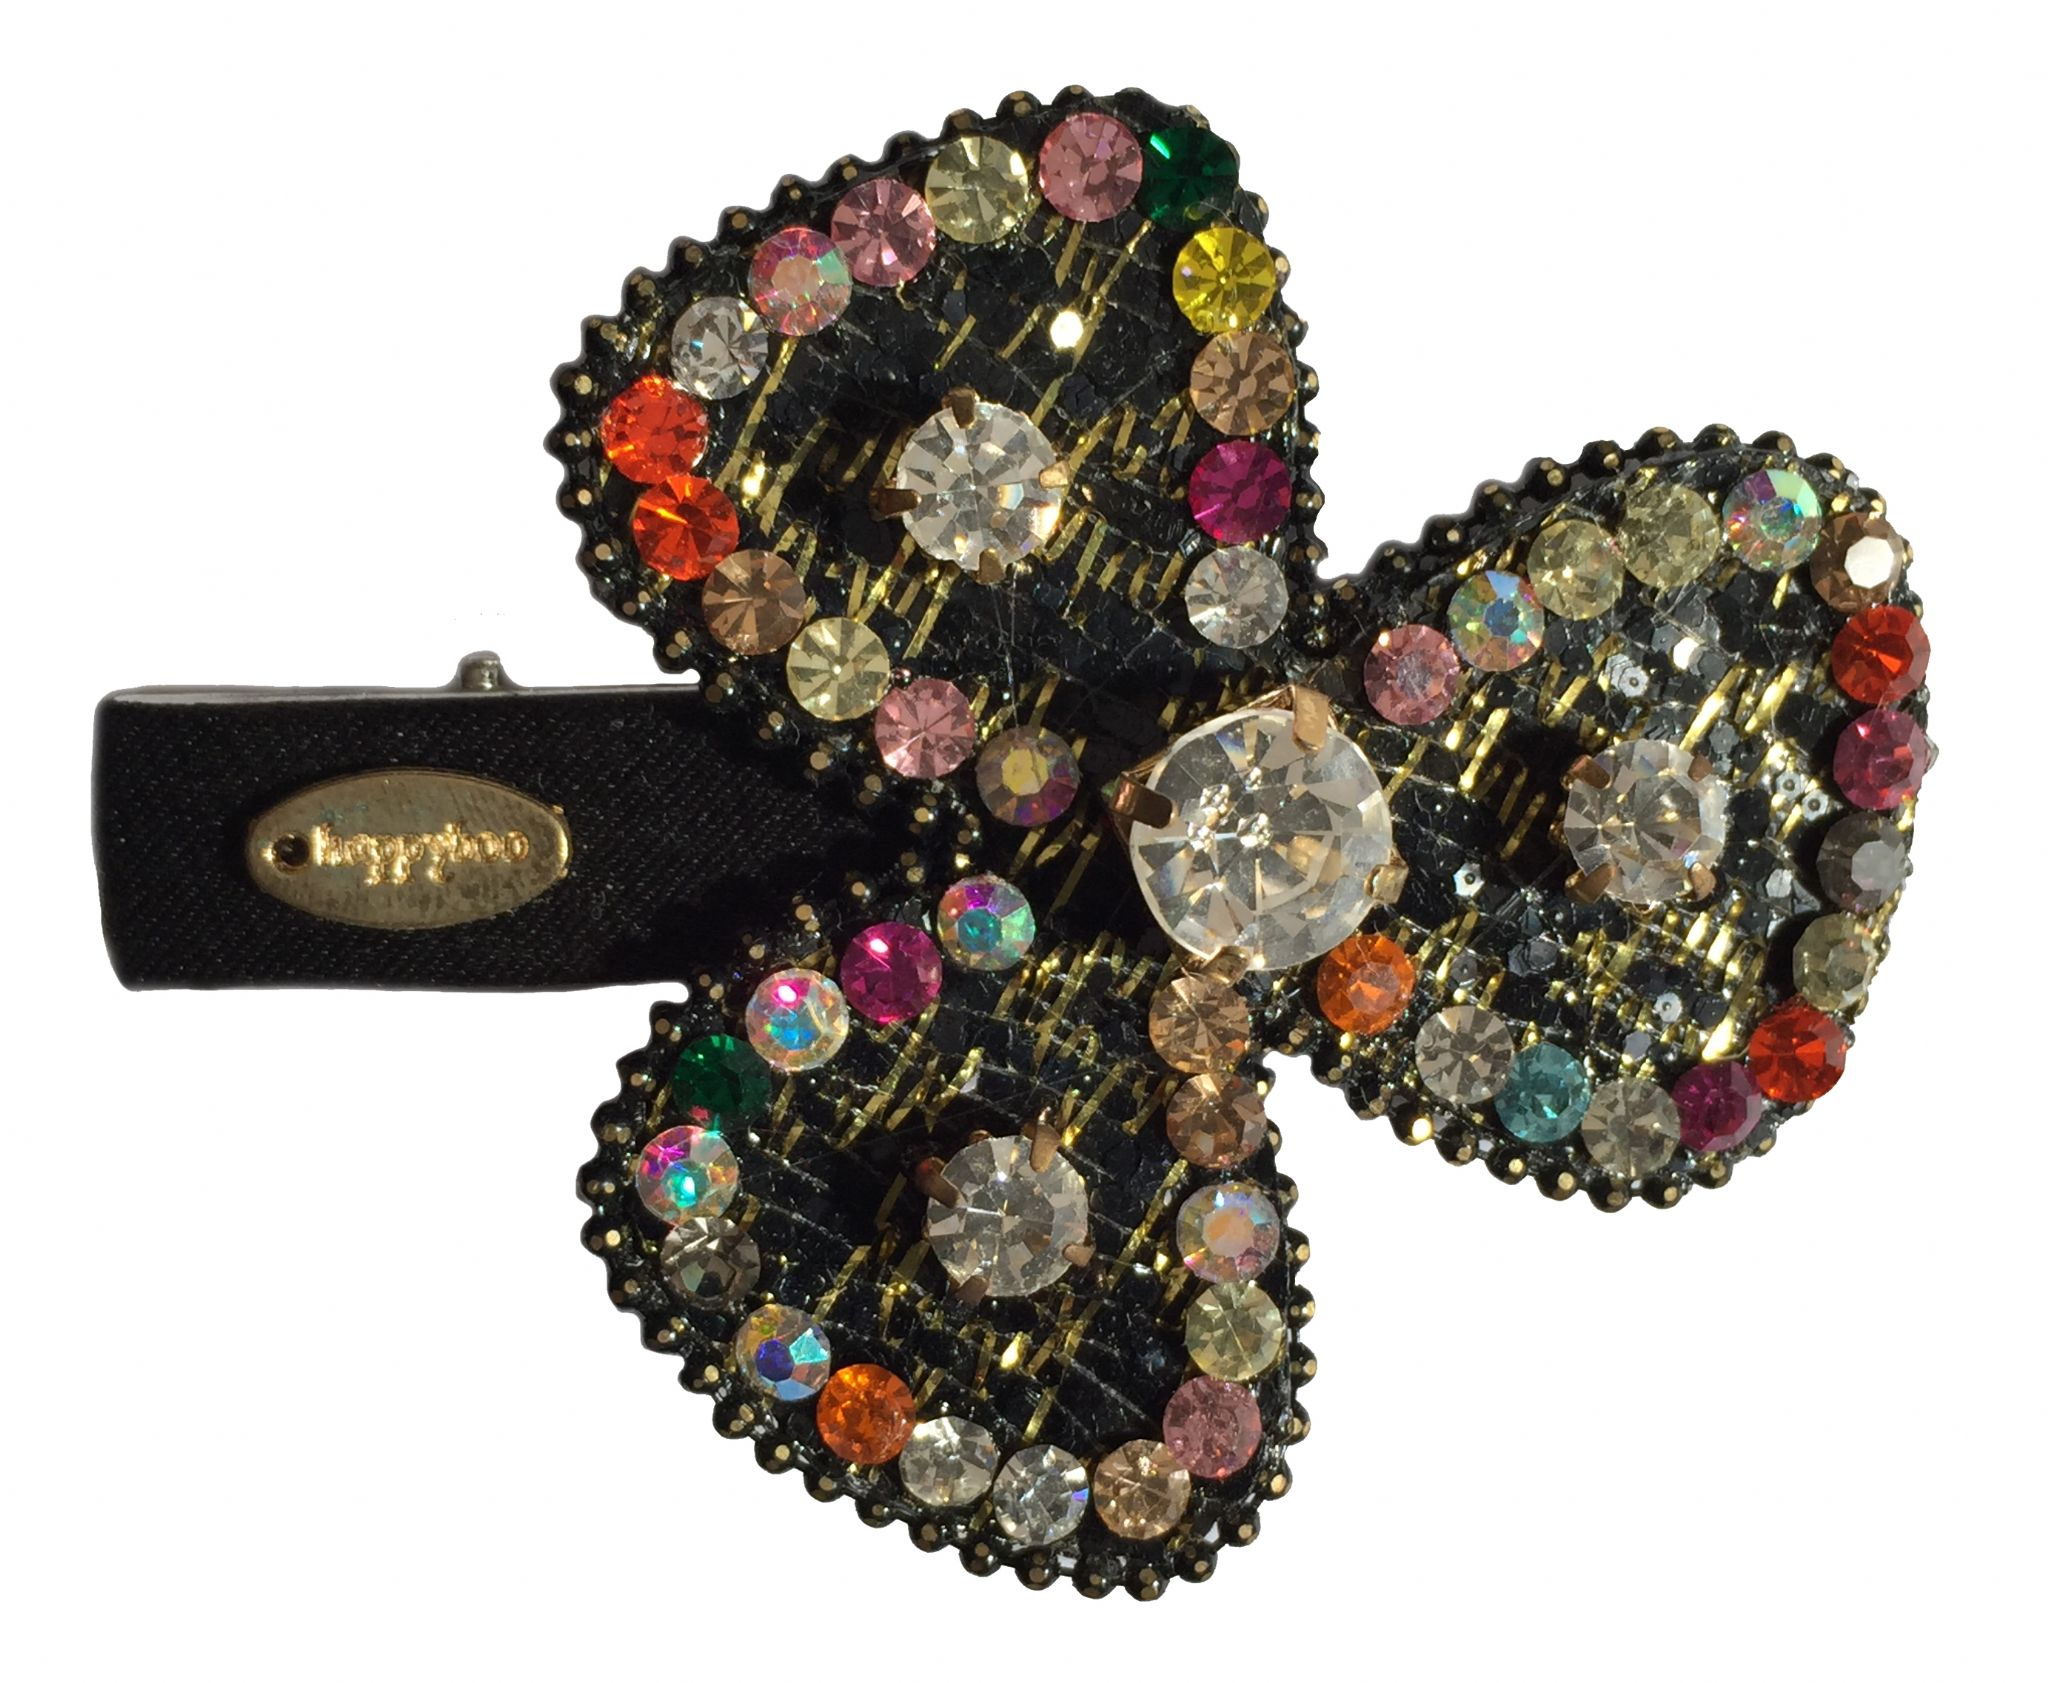 http://www.conmigolondon.co.uk/ekmps/shops/conmigo/images/al0010-flower-hair-slide-with-colourful-sparkling-sequins-15444-p.jpg